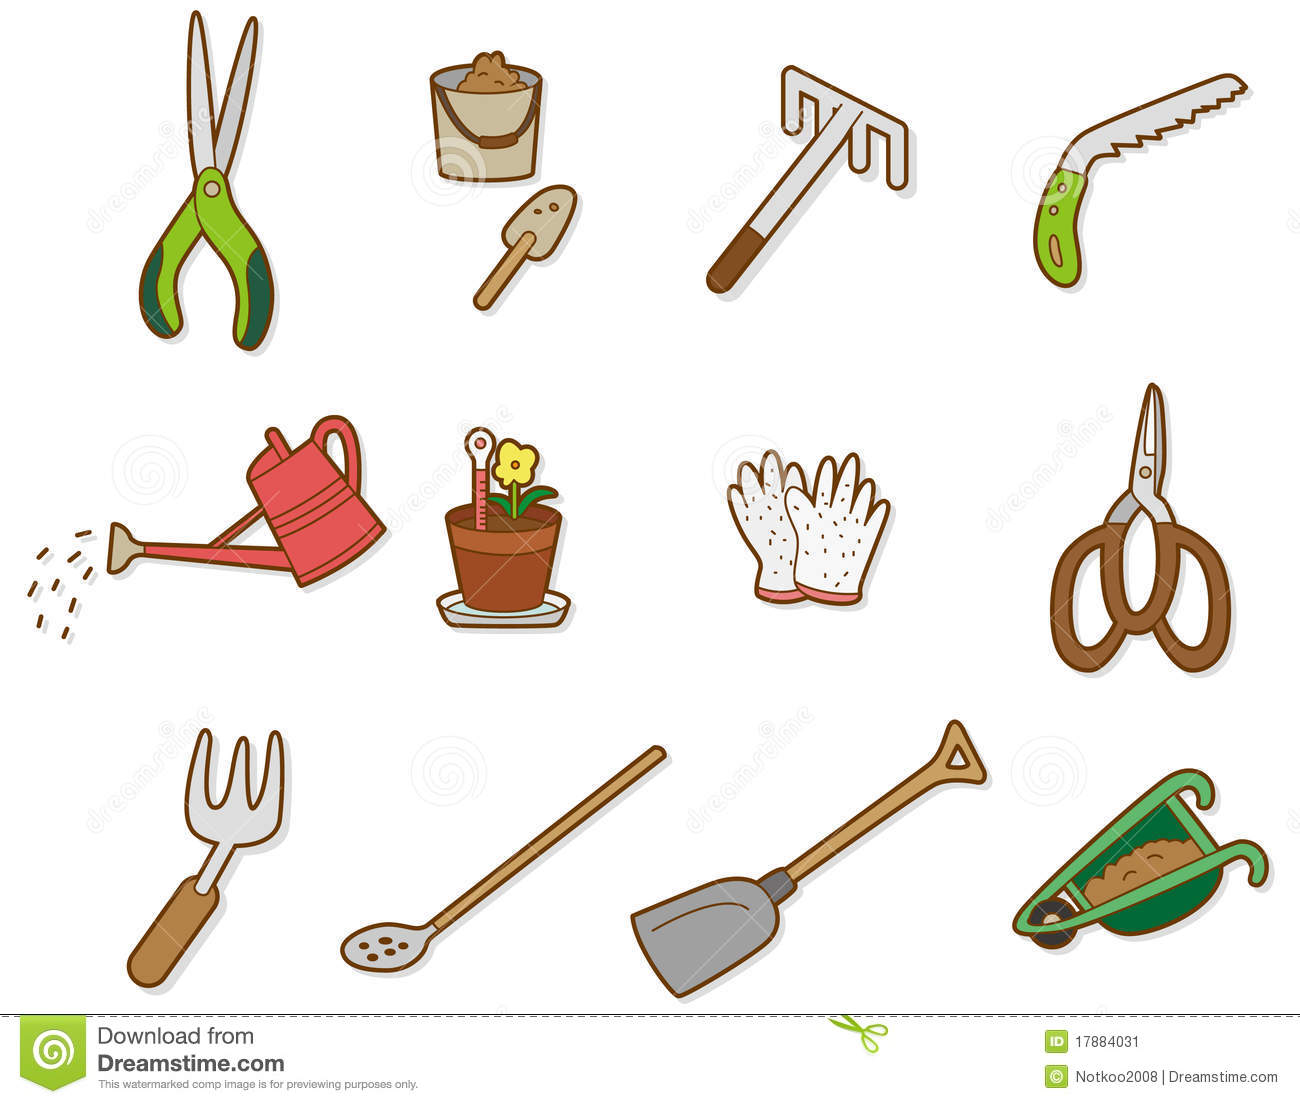 Agricultural tools clipart.